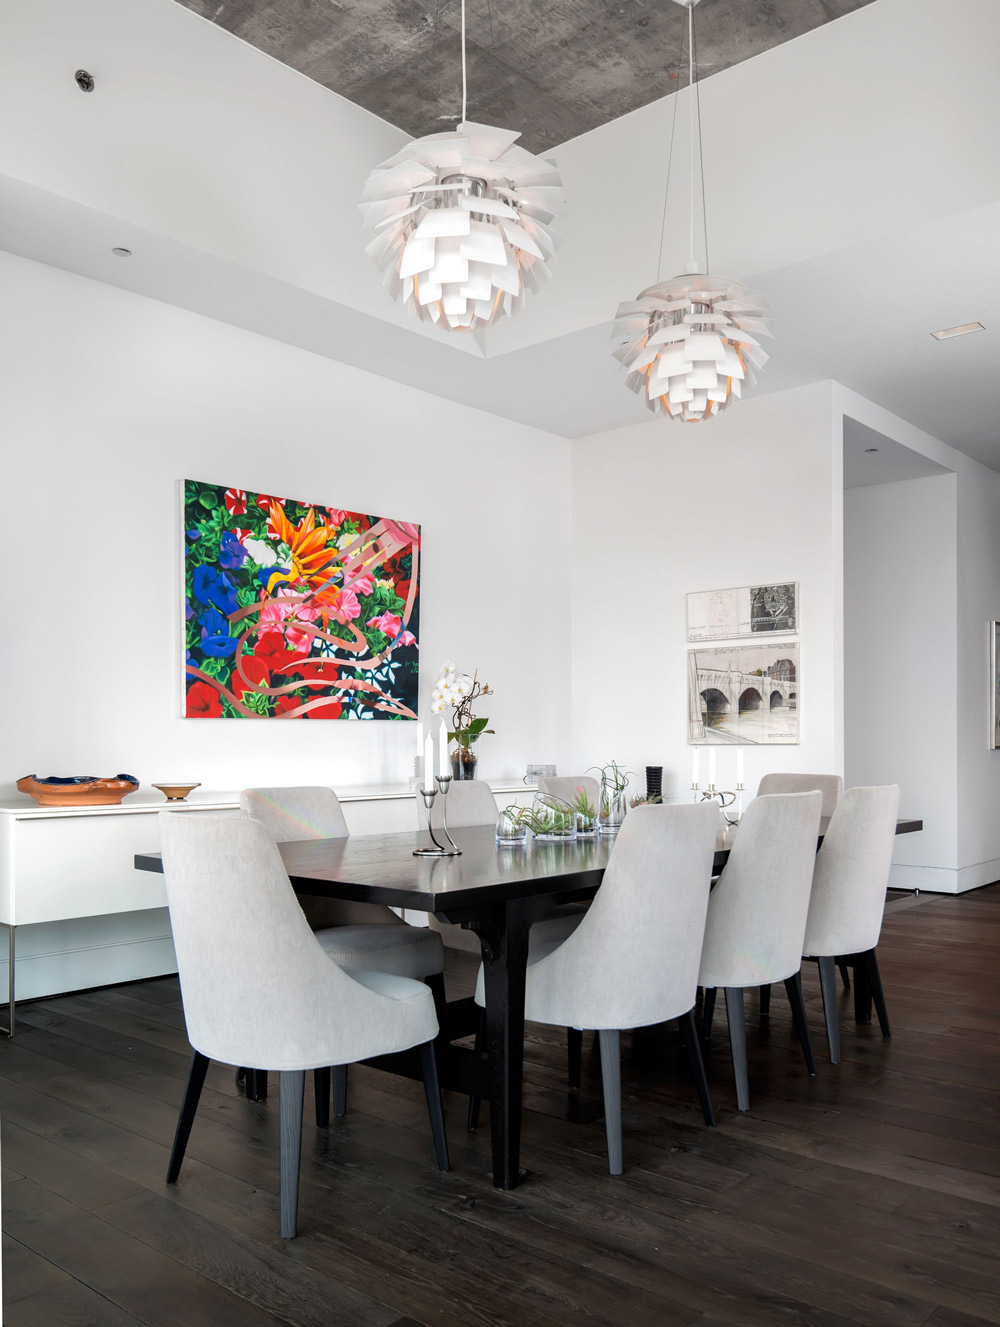 White pendant lights, dining chairs